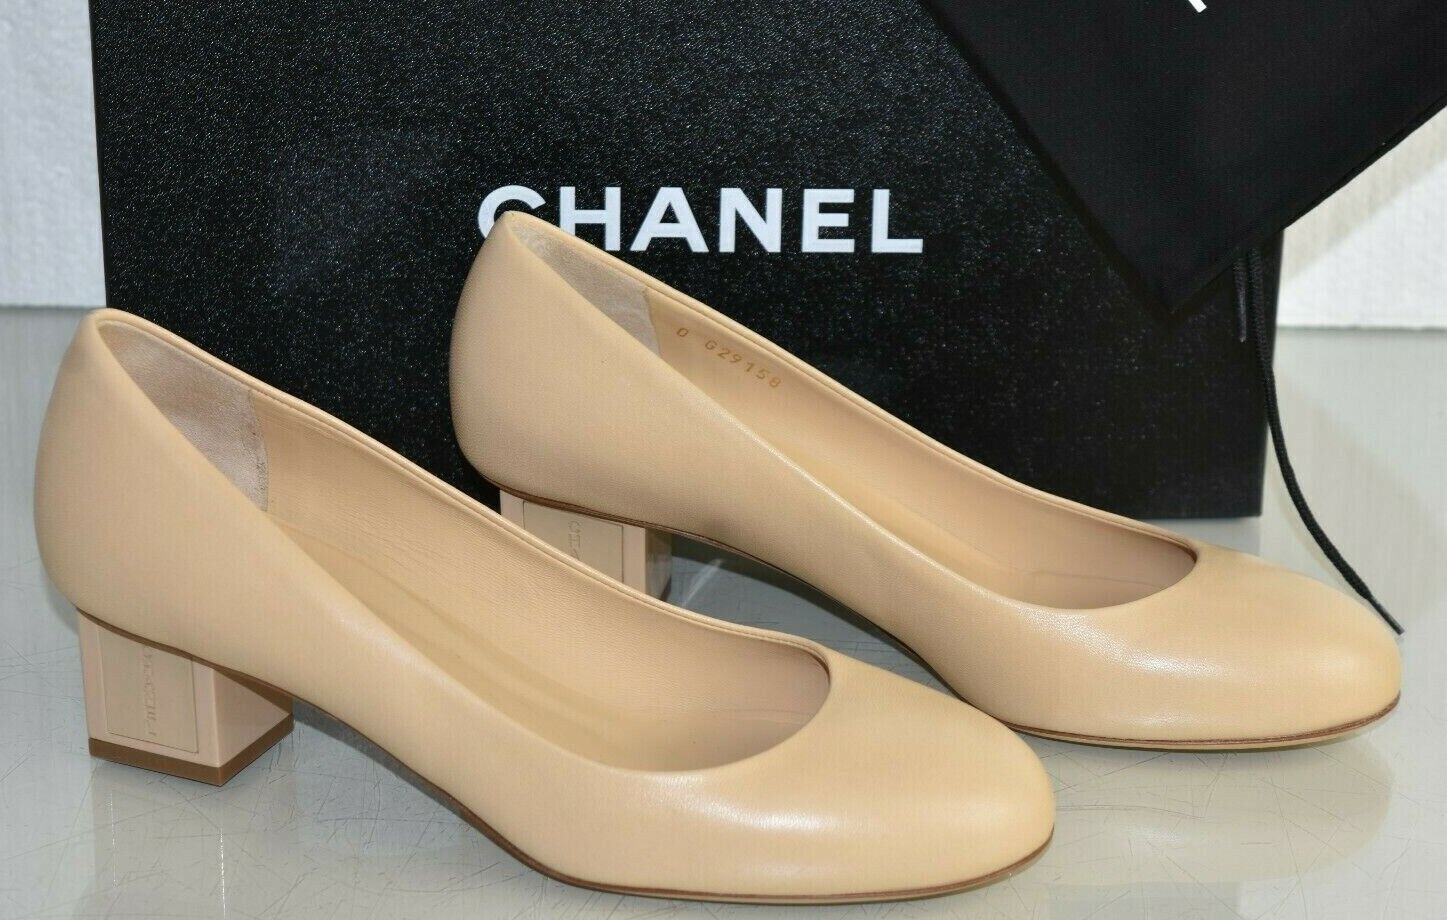 750 NEW NIB Chanel Beige Nude Leather Round Toe Low Heels Shoes Pumps 395